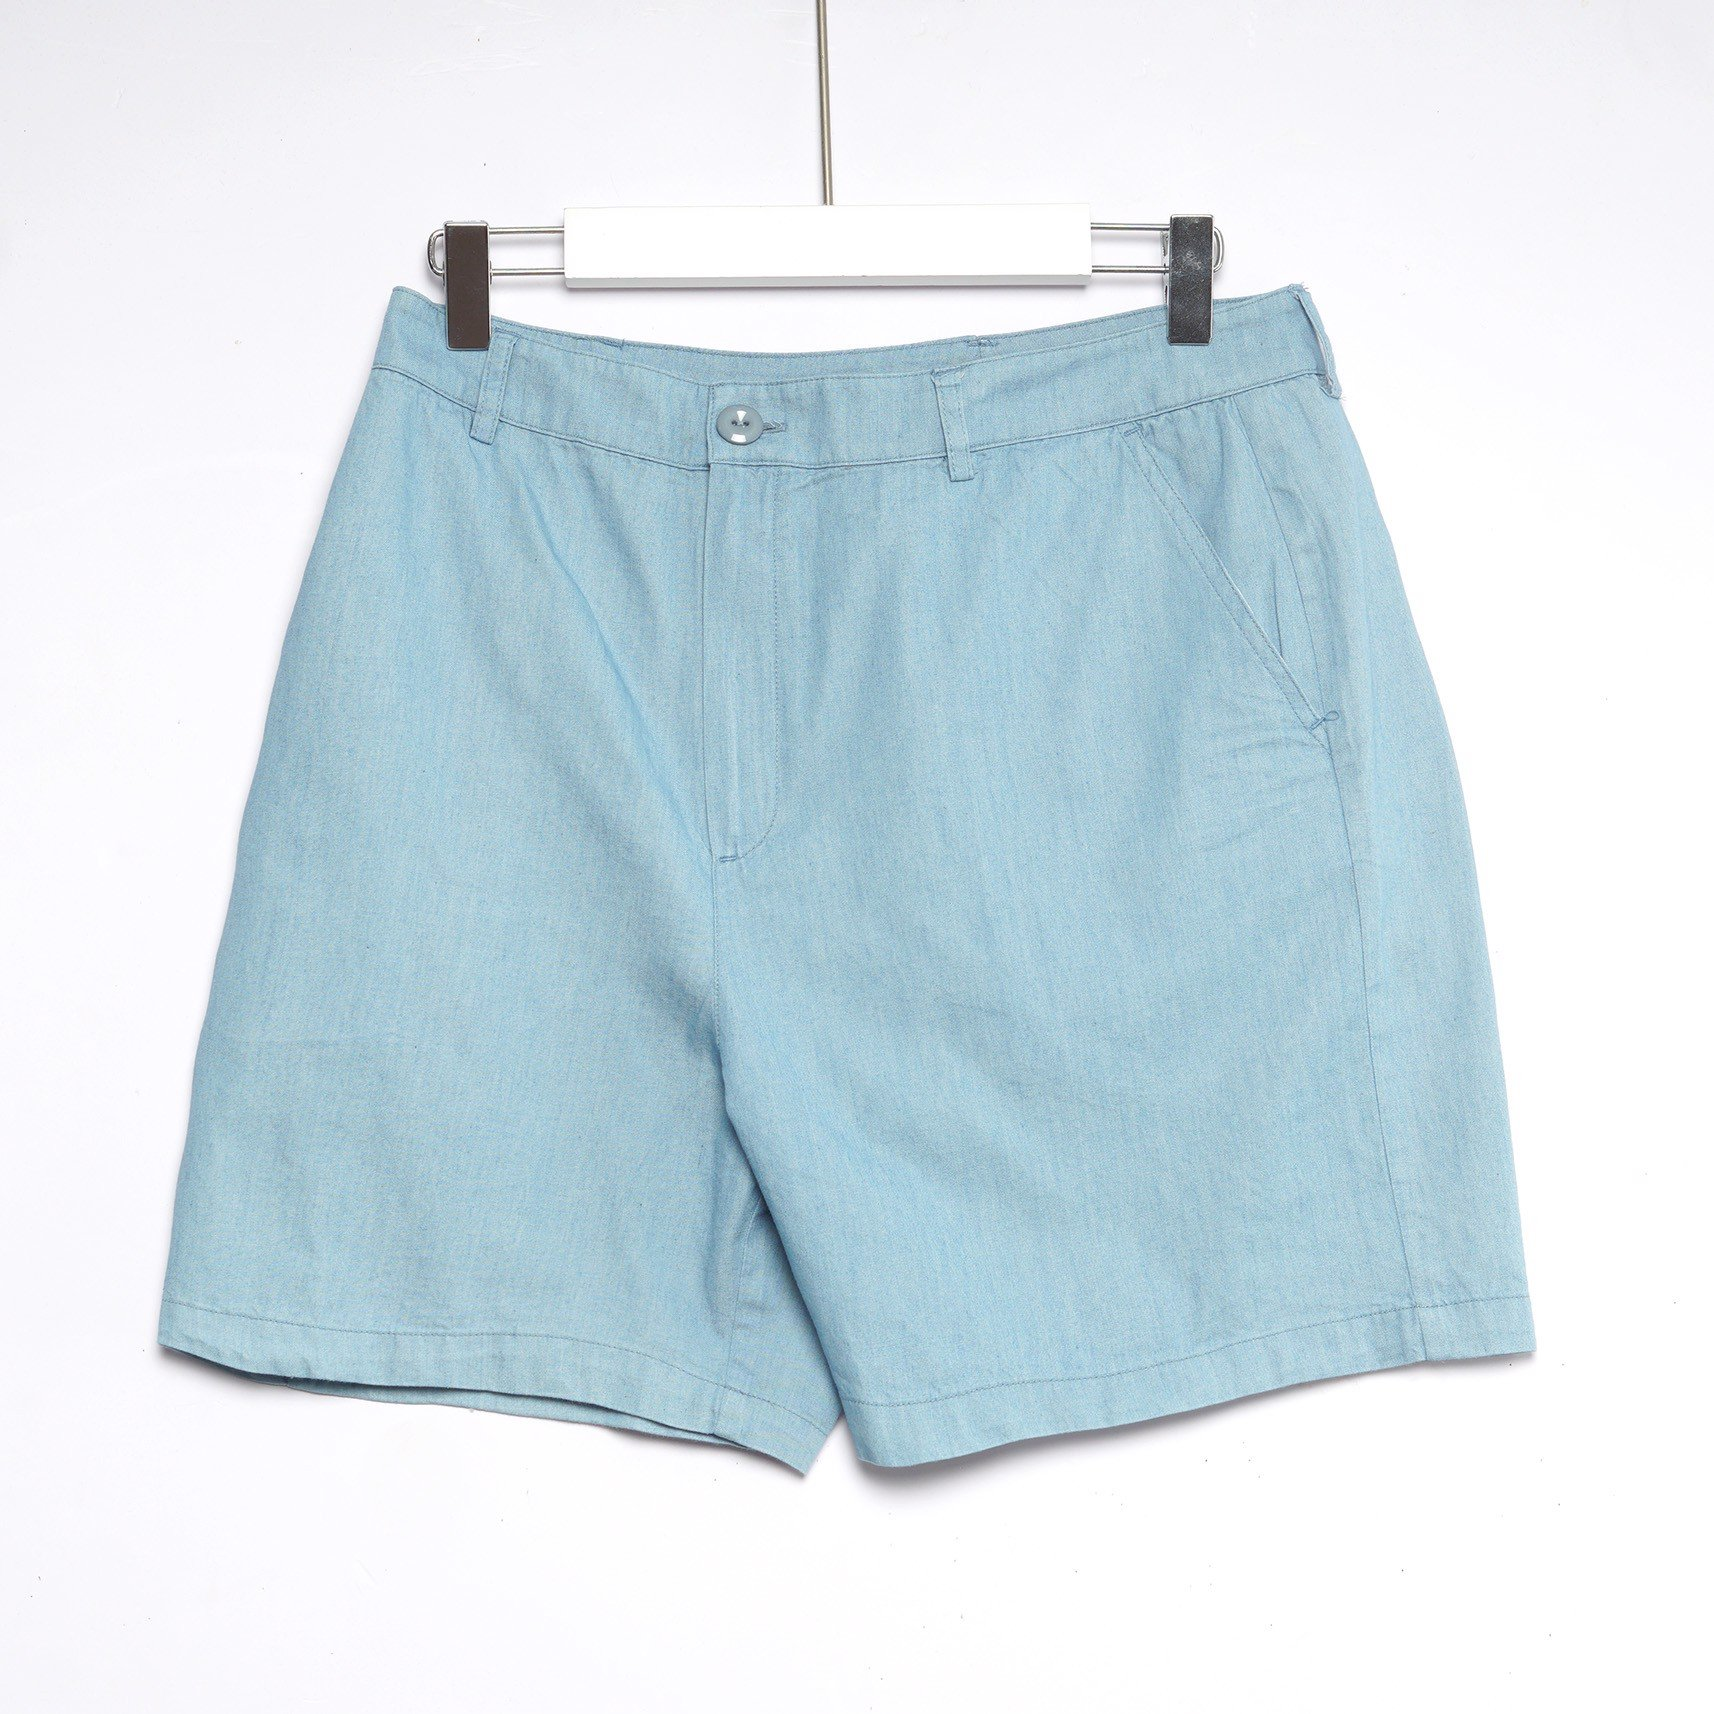 WCSR0015-S1-B001 QUẦN SHORTS NỮ DENIM COTTON